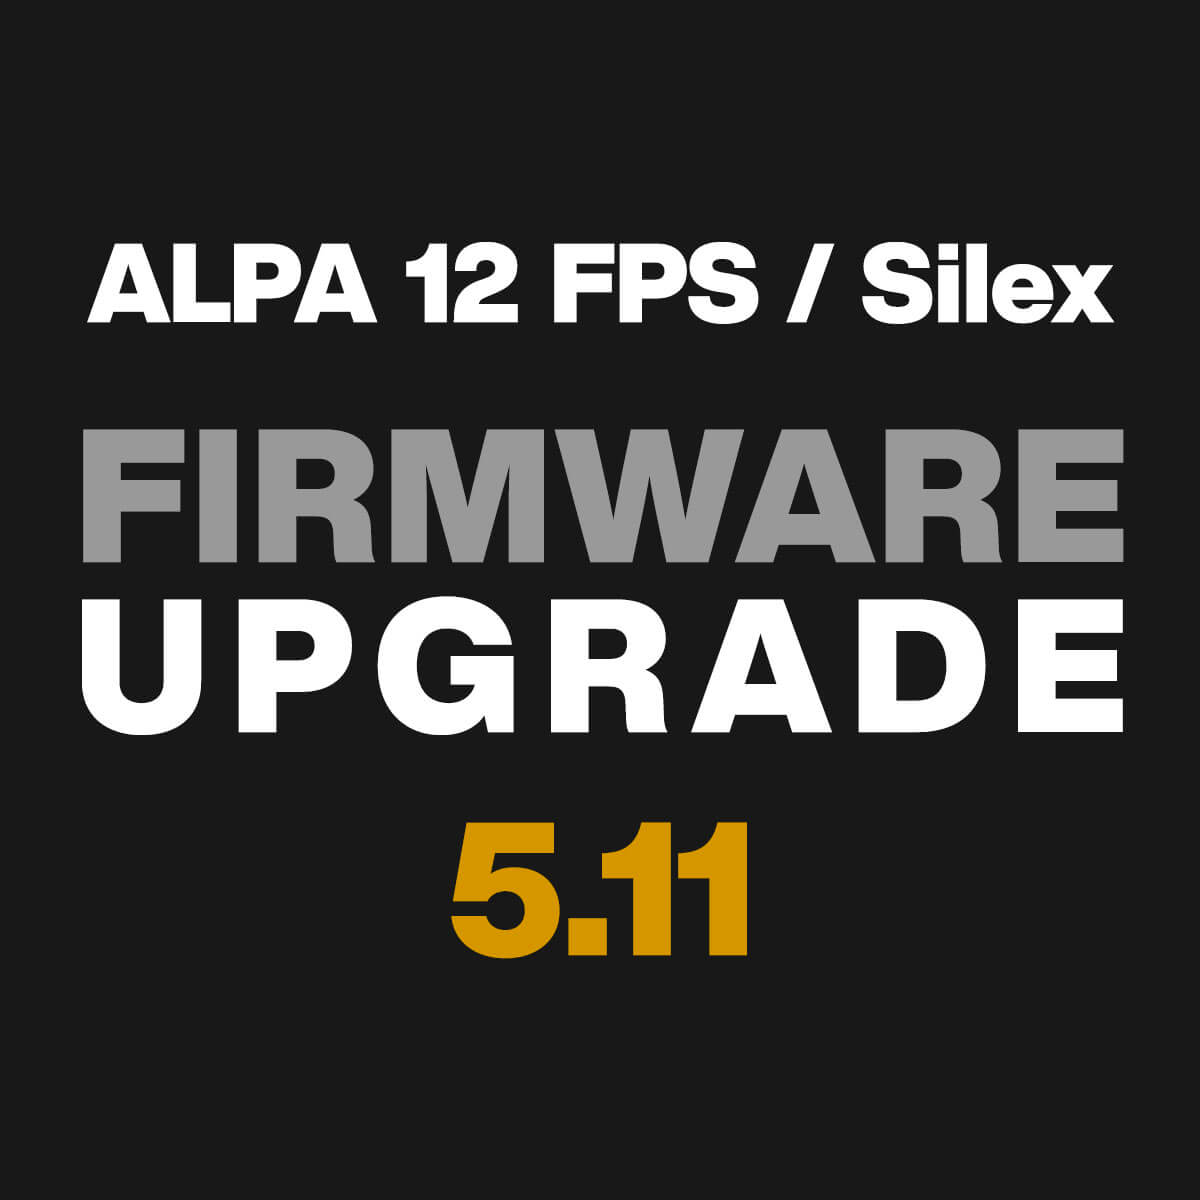 Firmware 5.11 - Exposure Lock